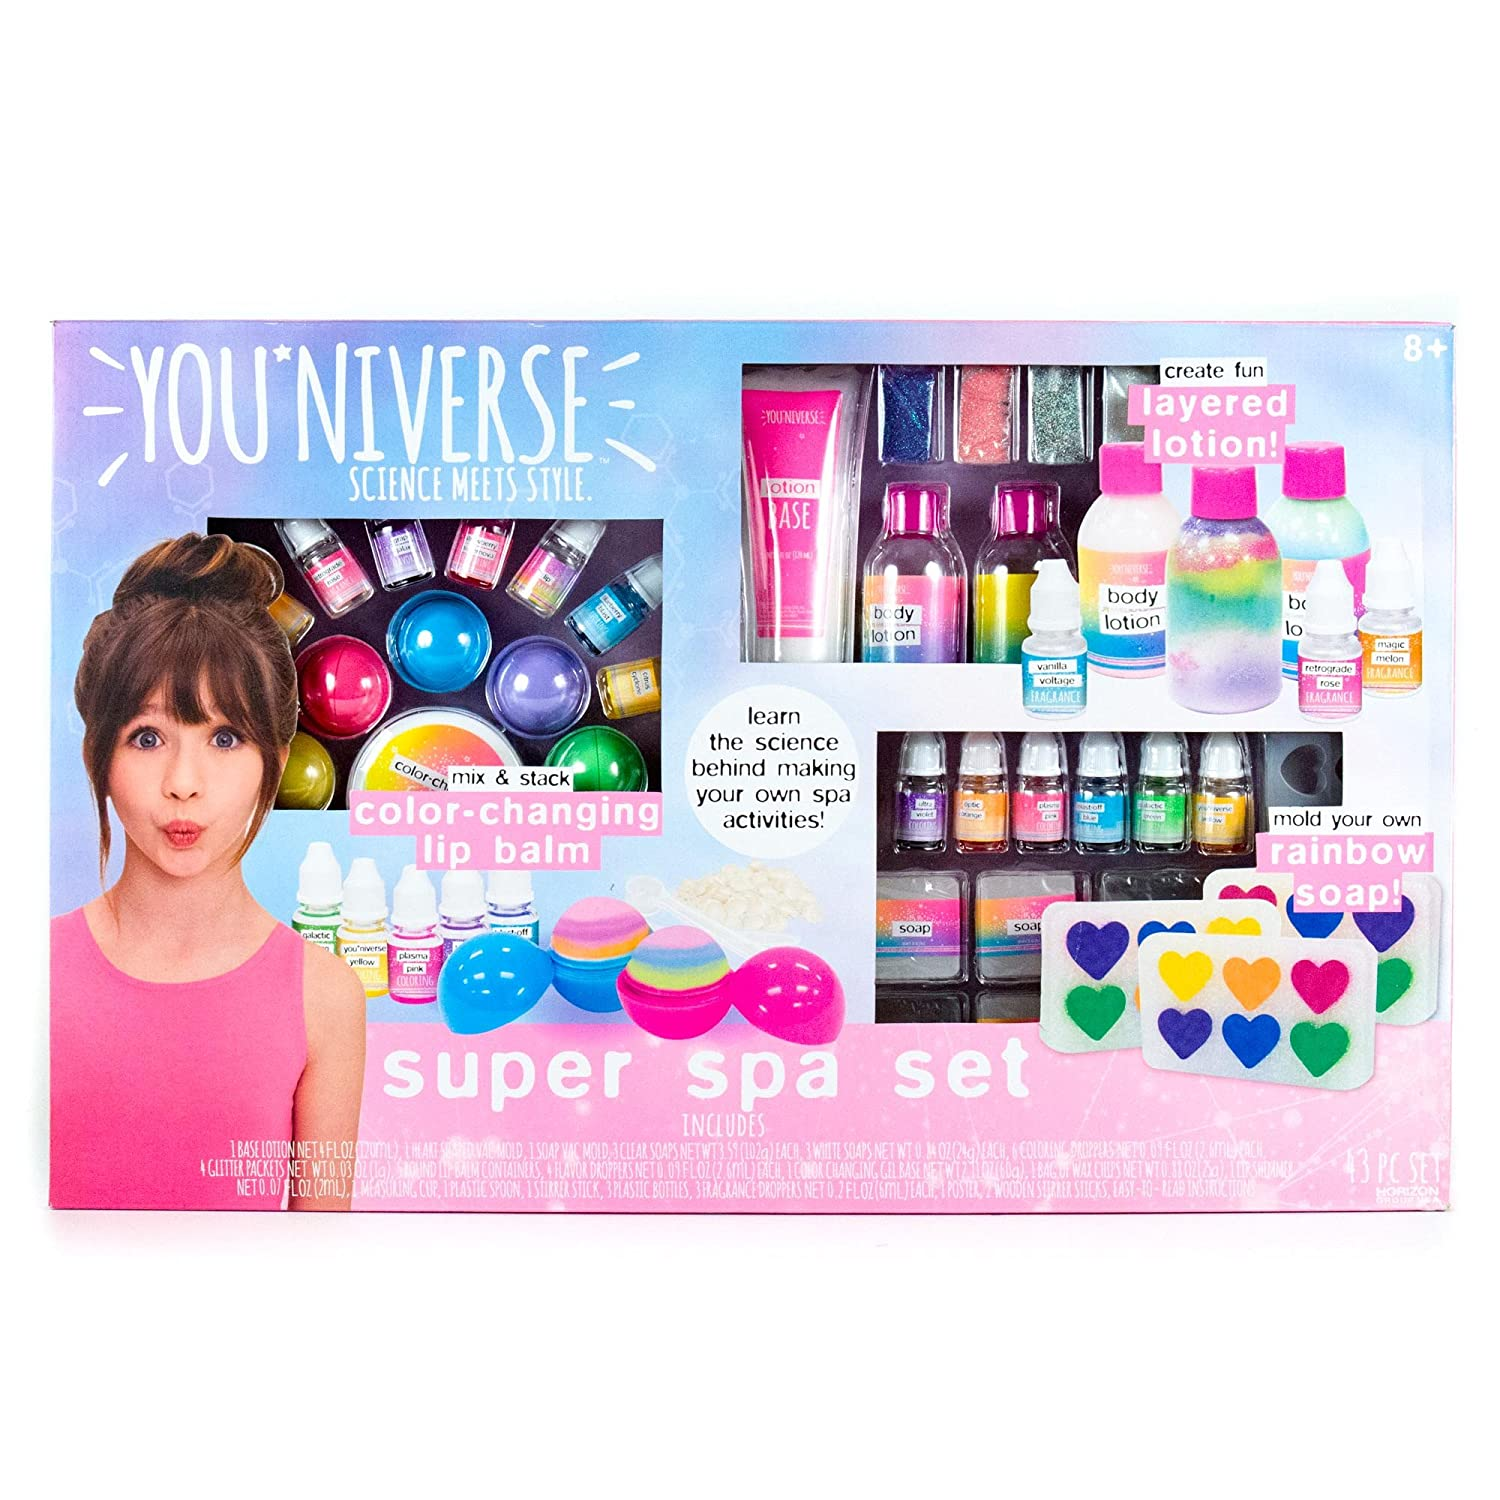 YouNiverse Super Spa Set by Horizon Group Usa, Ultimate DIY STEM Science Kit, Make Your Own Lip balms, Shimmer Lotions & Rainbow Soaps, Multicolored